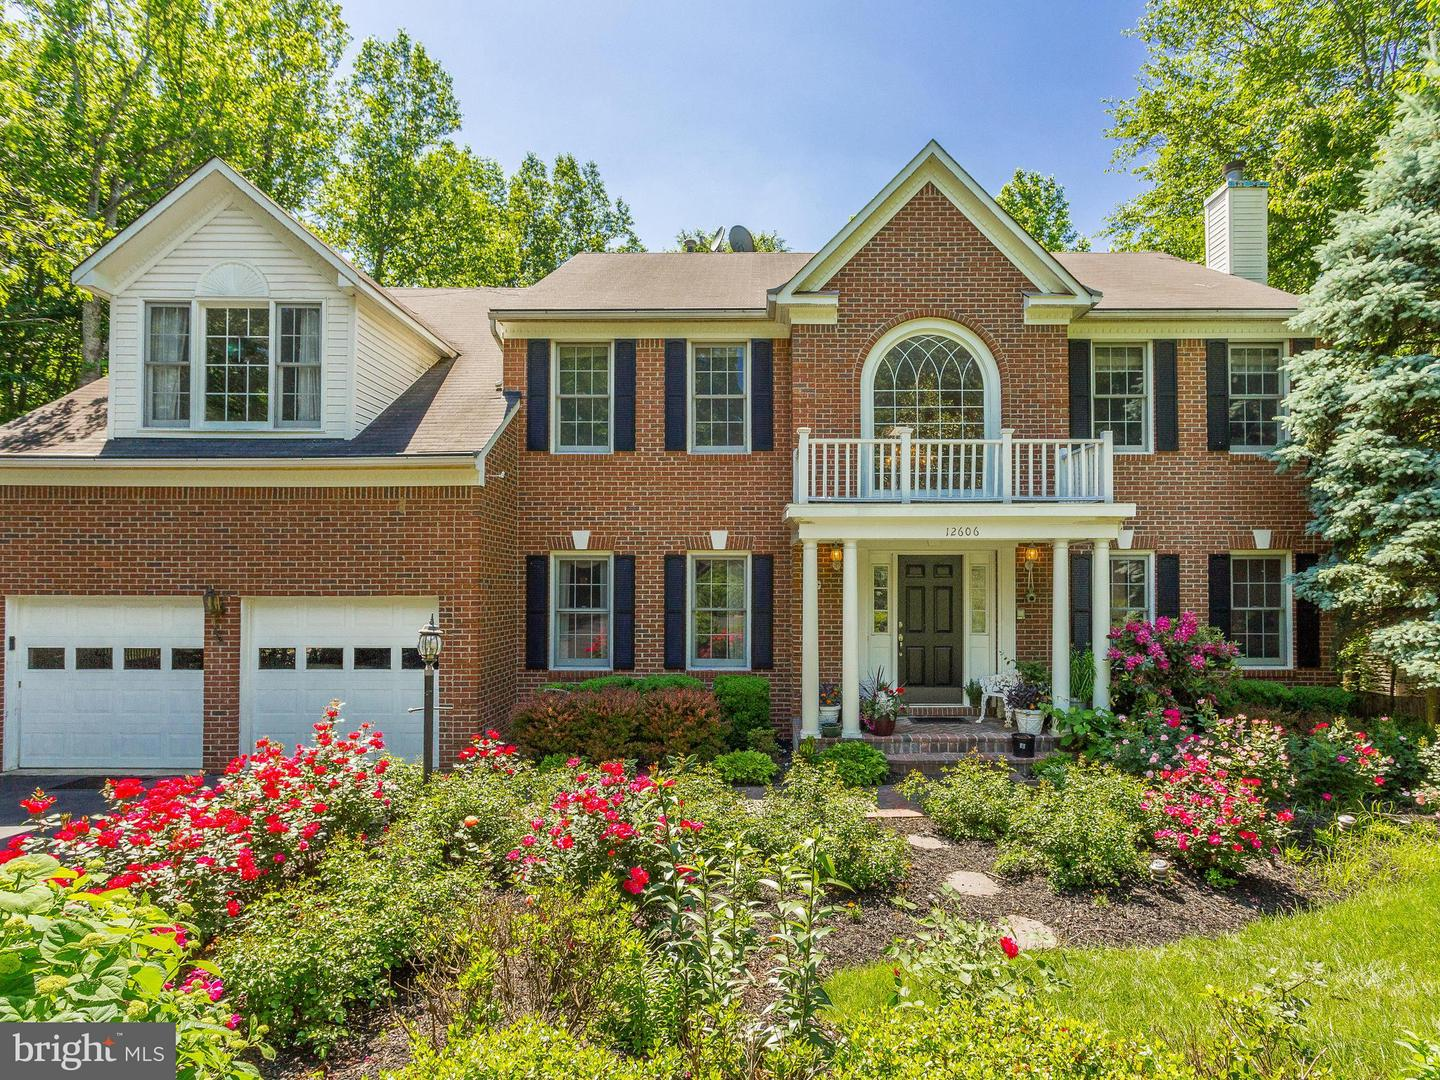 Single Family for Sale at 12606 Clawson Ln Manassas, Virginia 20112 United States